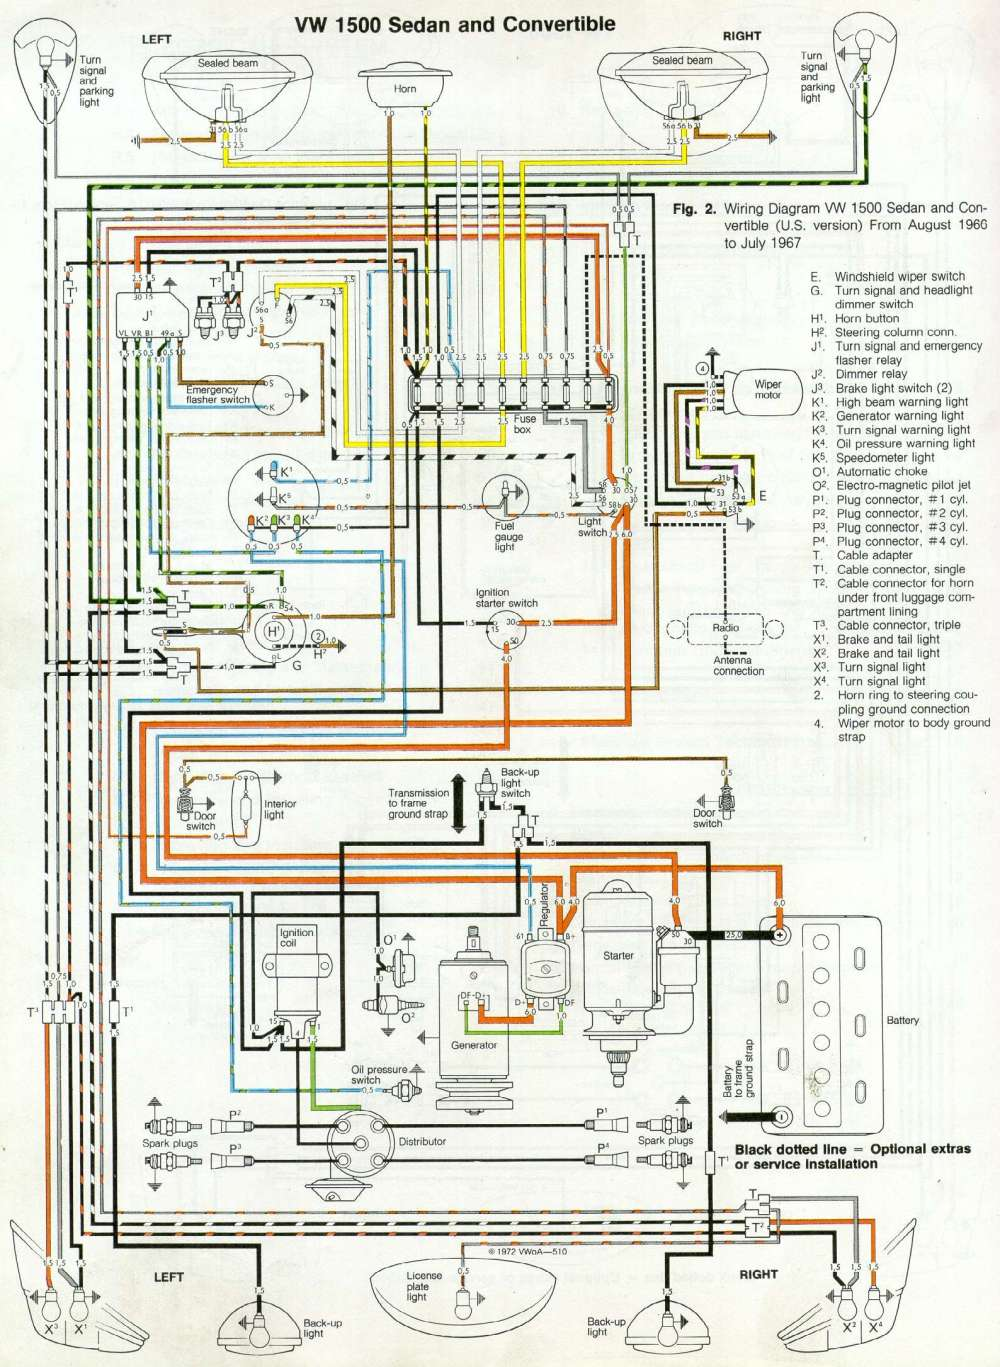 medium resolution of 68 volkswagen beetle wiring diagram wiring library new beetle window motor wiring diagram 68 volkswagen beetle